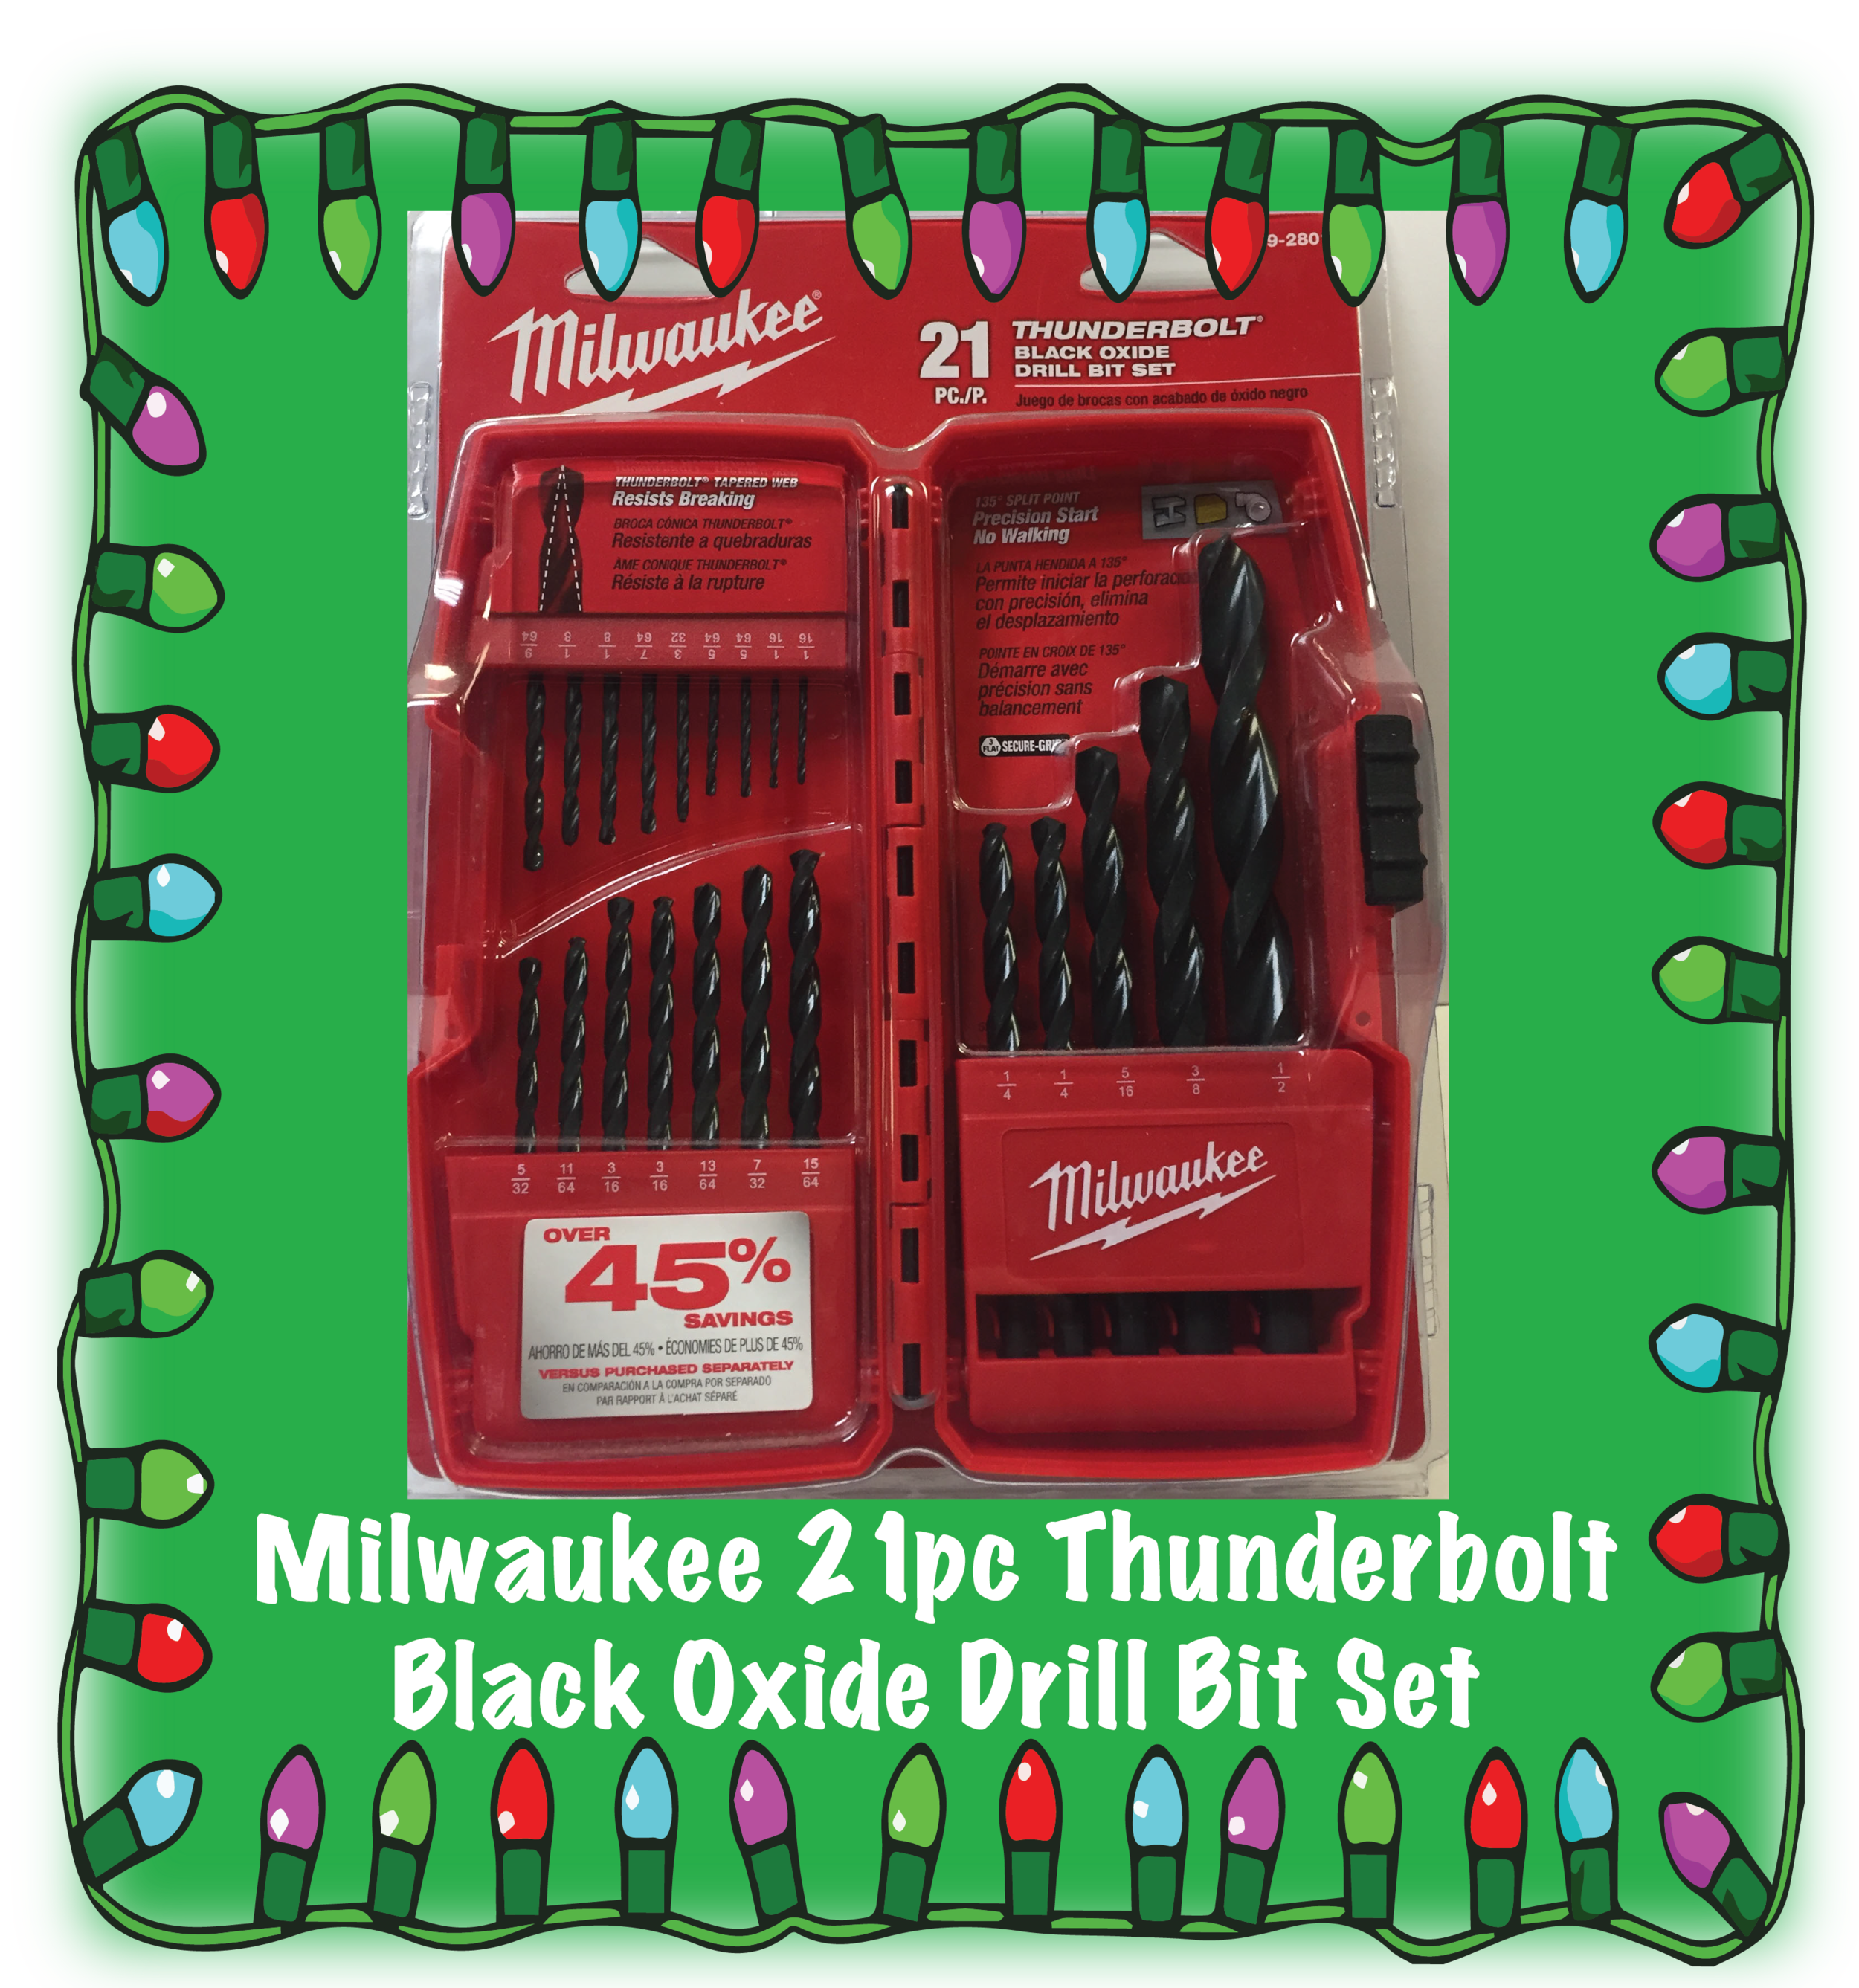 Milwaukee 21 piece Thunderbolt Black Oxide Drill Bit Set. Part Number: 48-89-2801